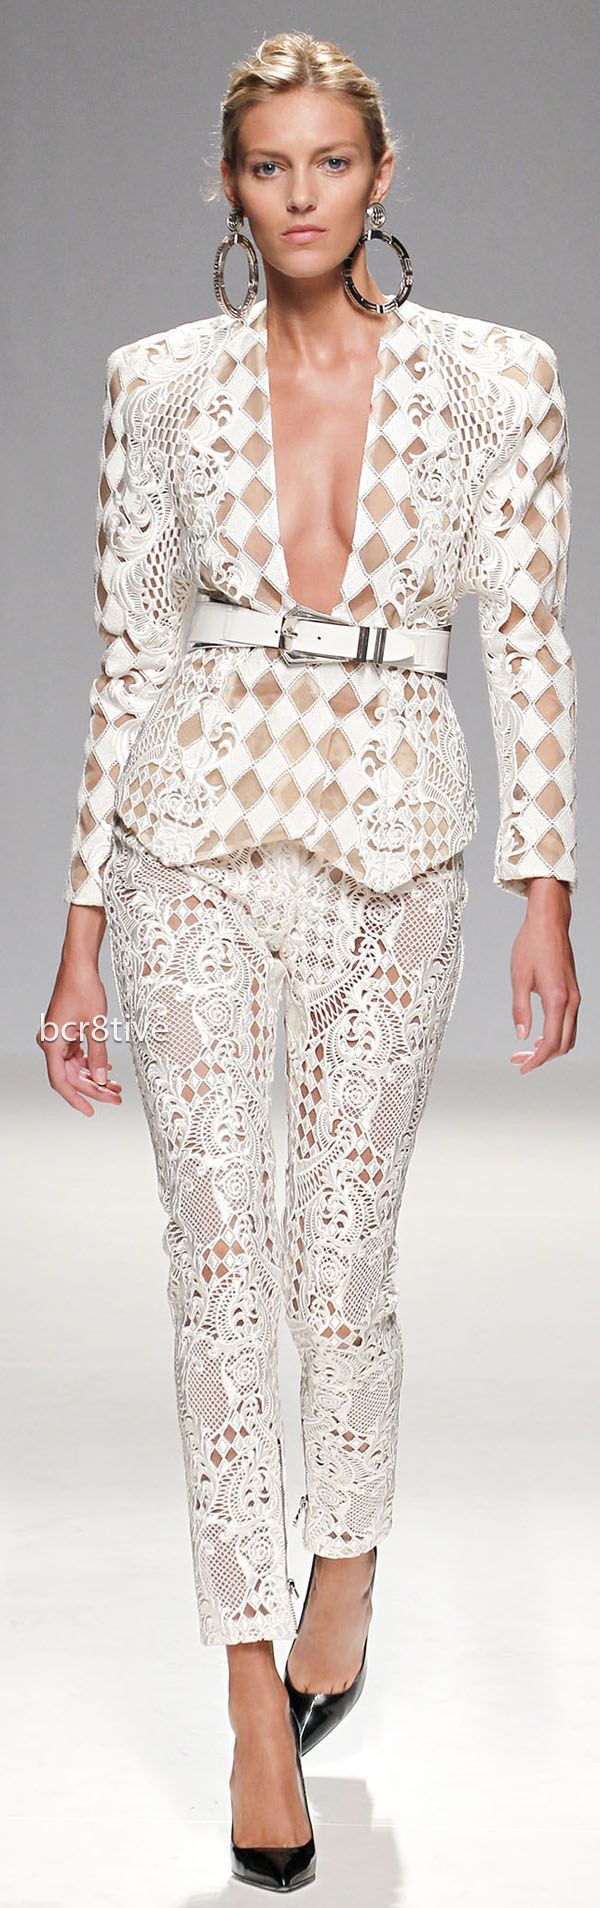 Balmain Spring Summer 2013 Ready to Wear | The House of Beccaria